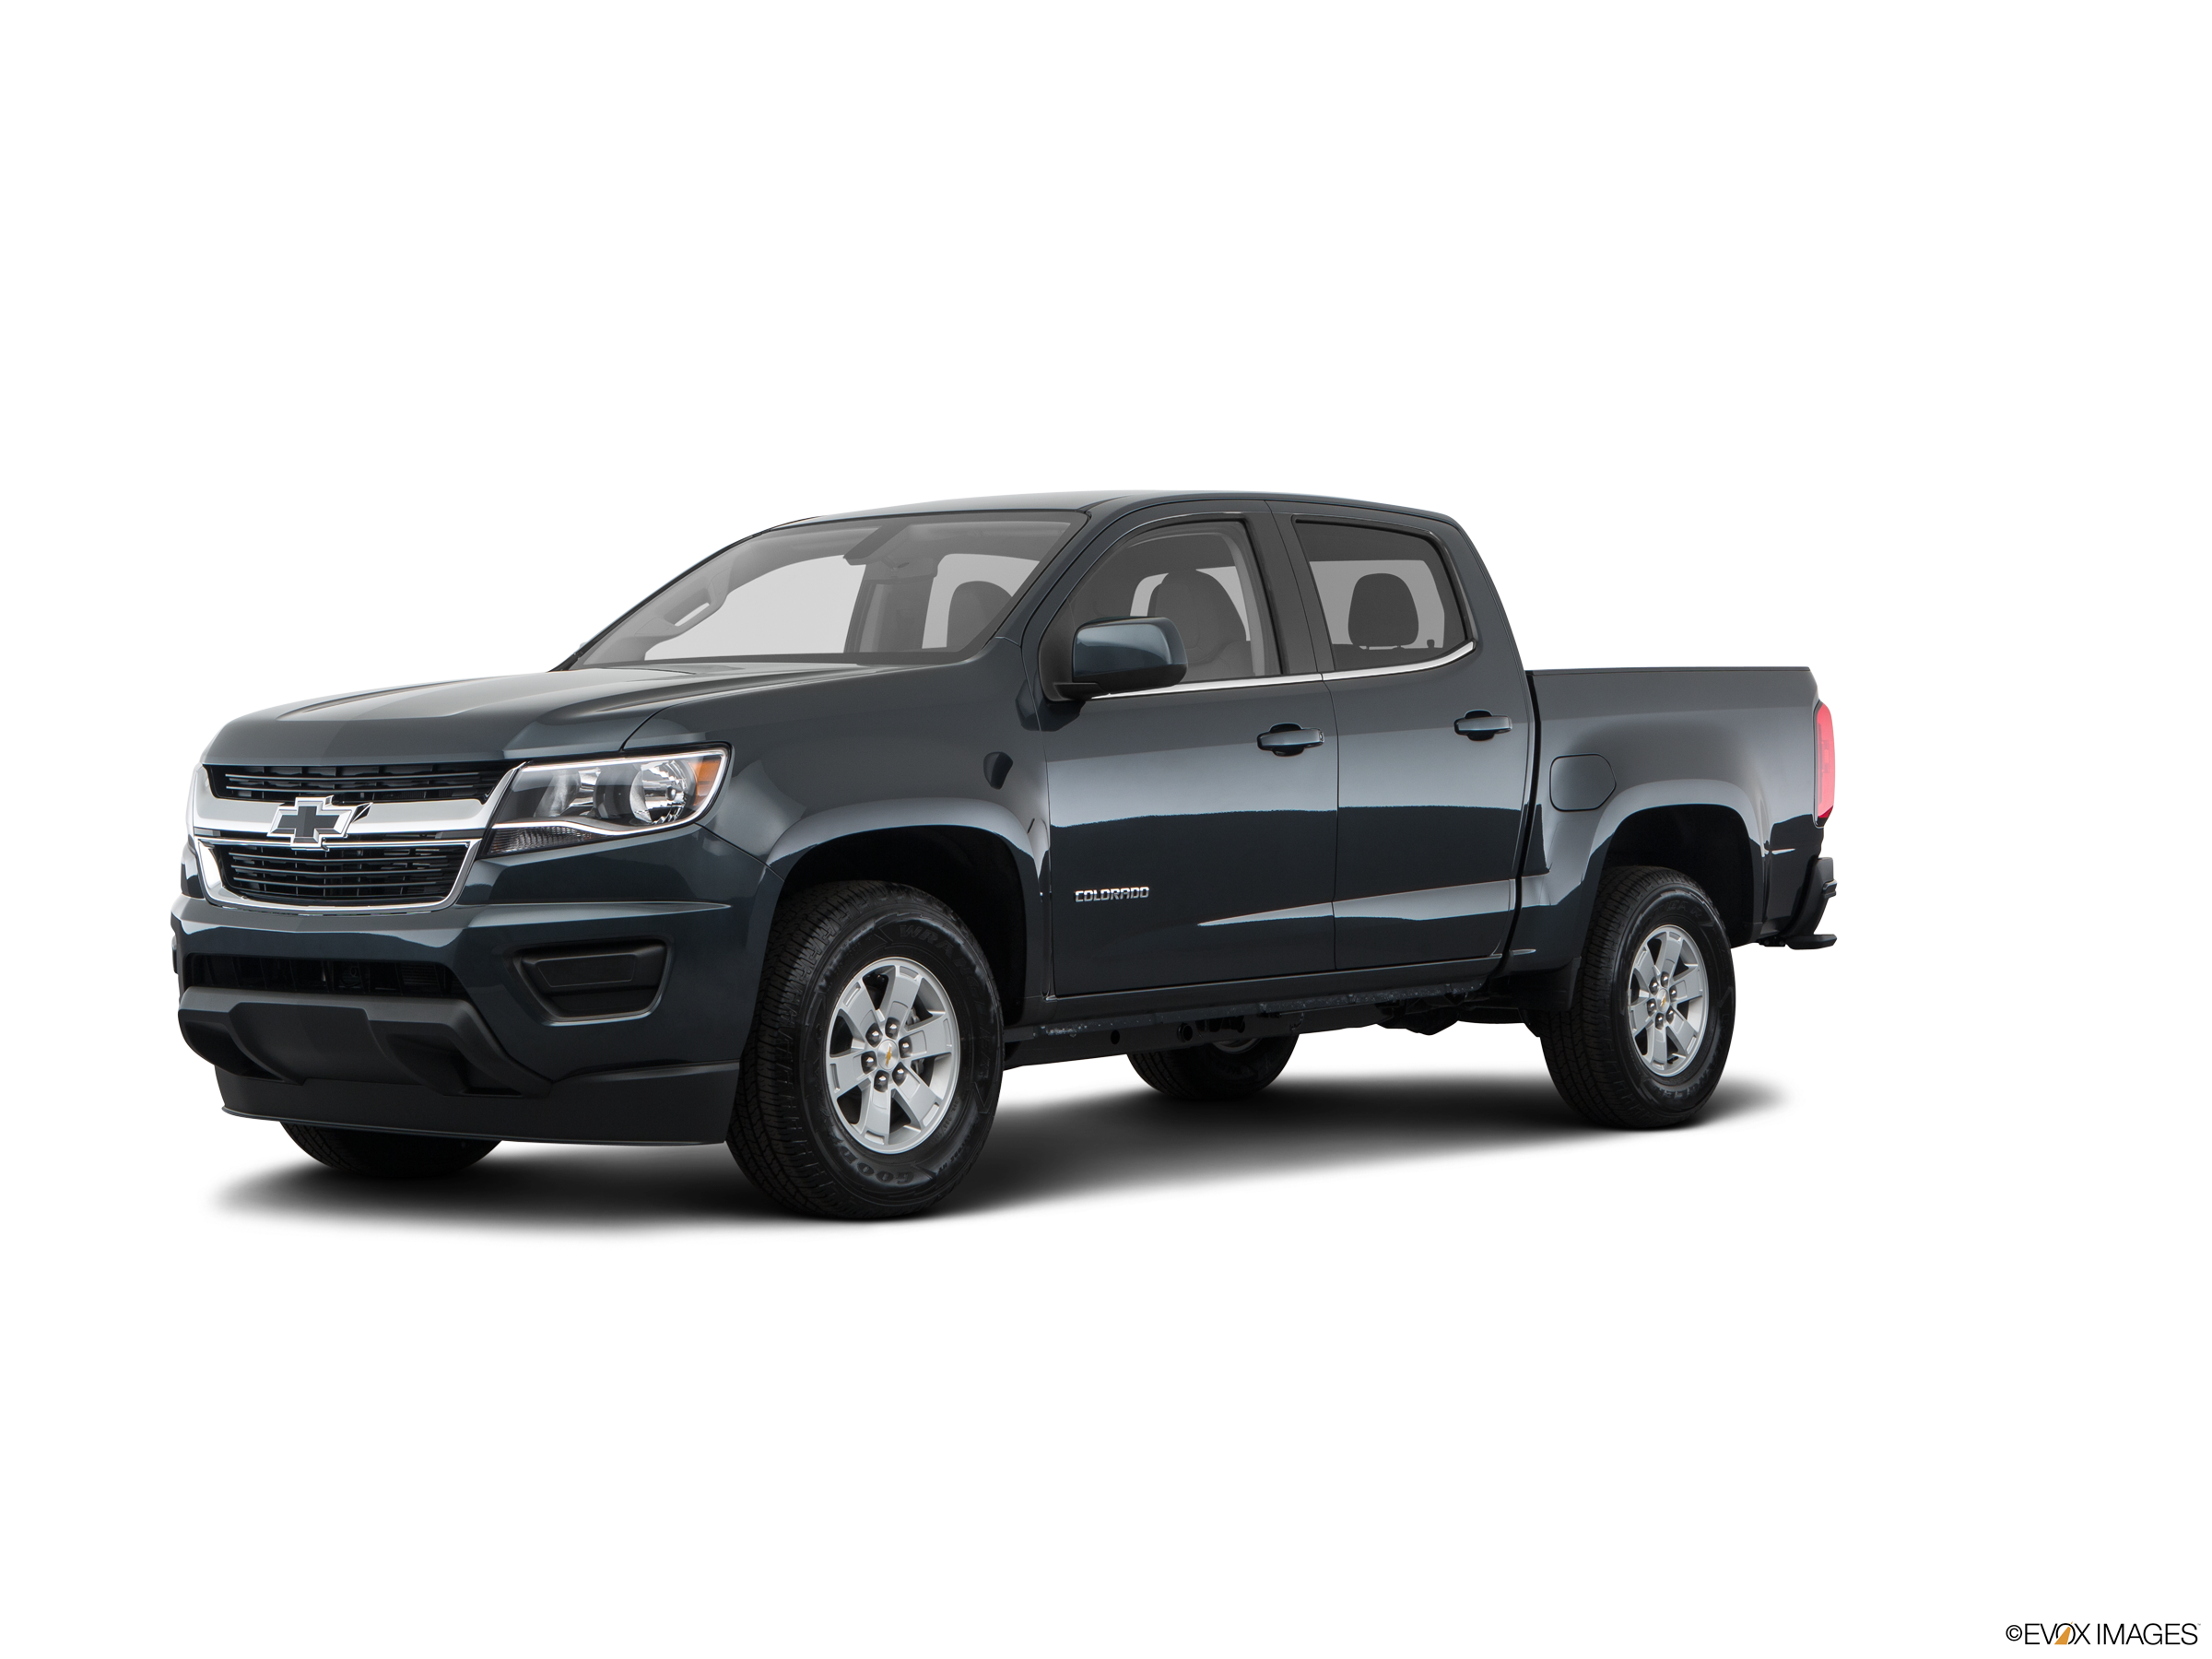 Chevy Colorado Crew Cab >> 2018 Chevrolet Colorado Crew Cab Pricing Ratings Expert Review